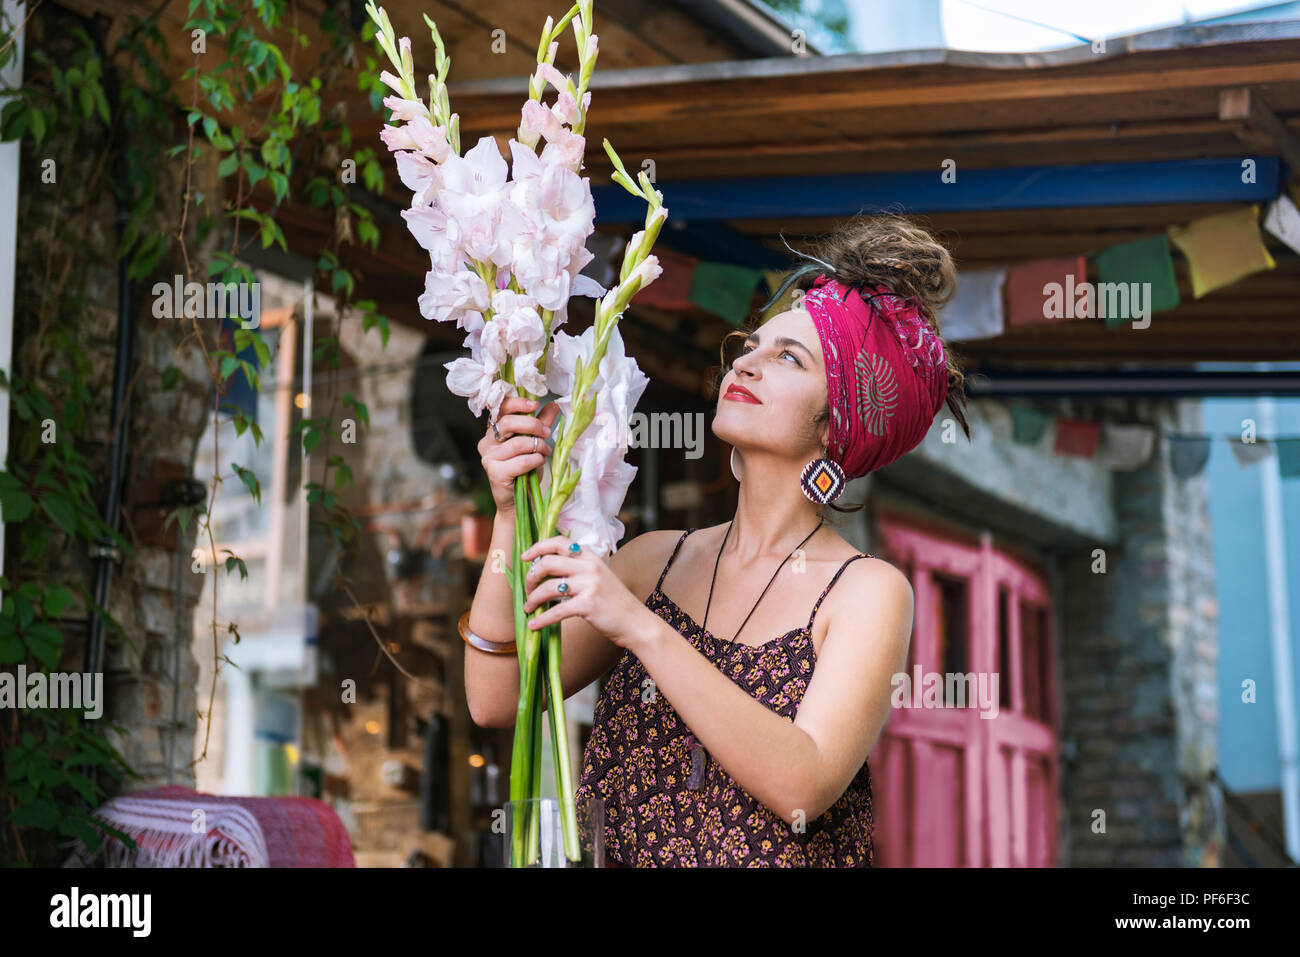 Dark-haired woman wearing red headband looking at flowers - Stock Image